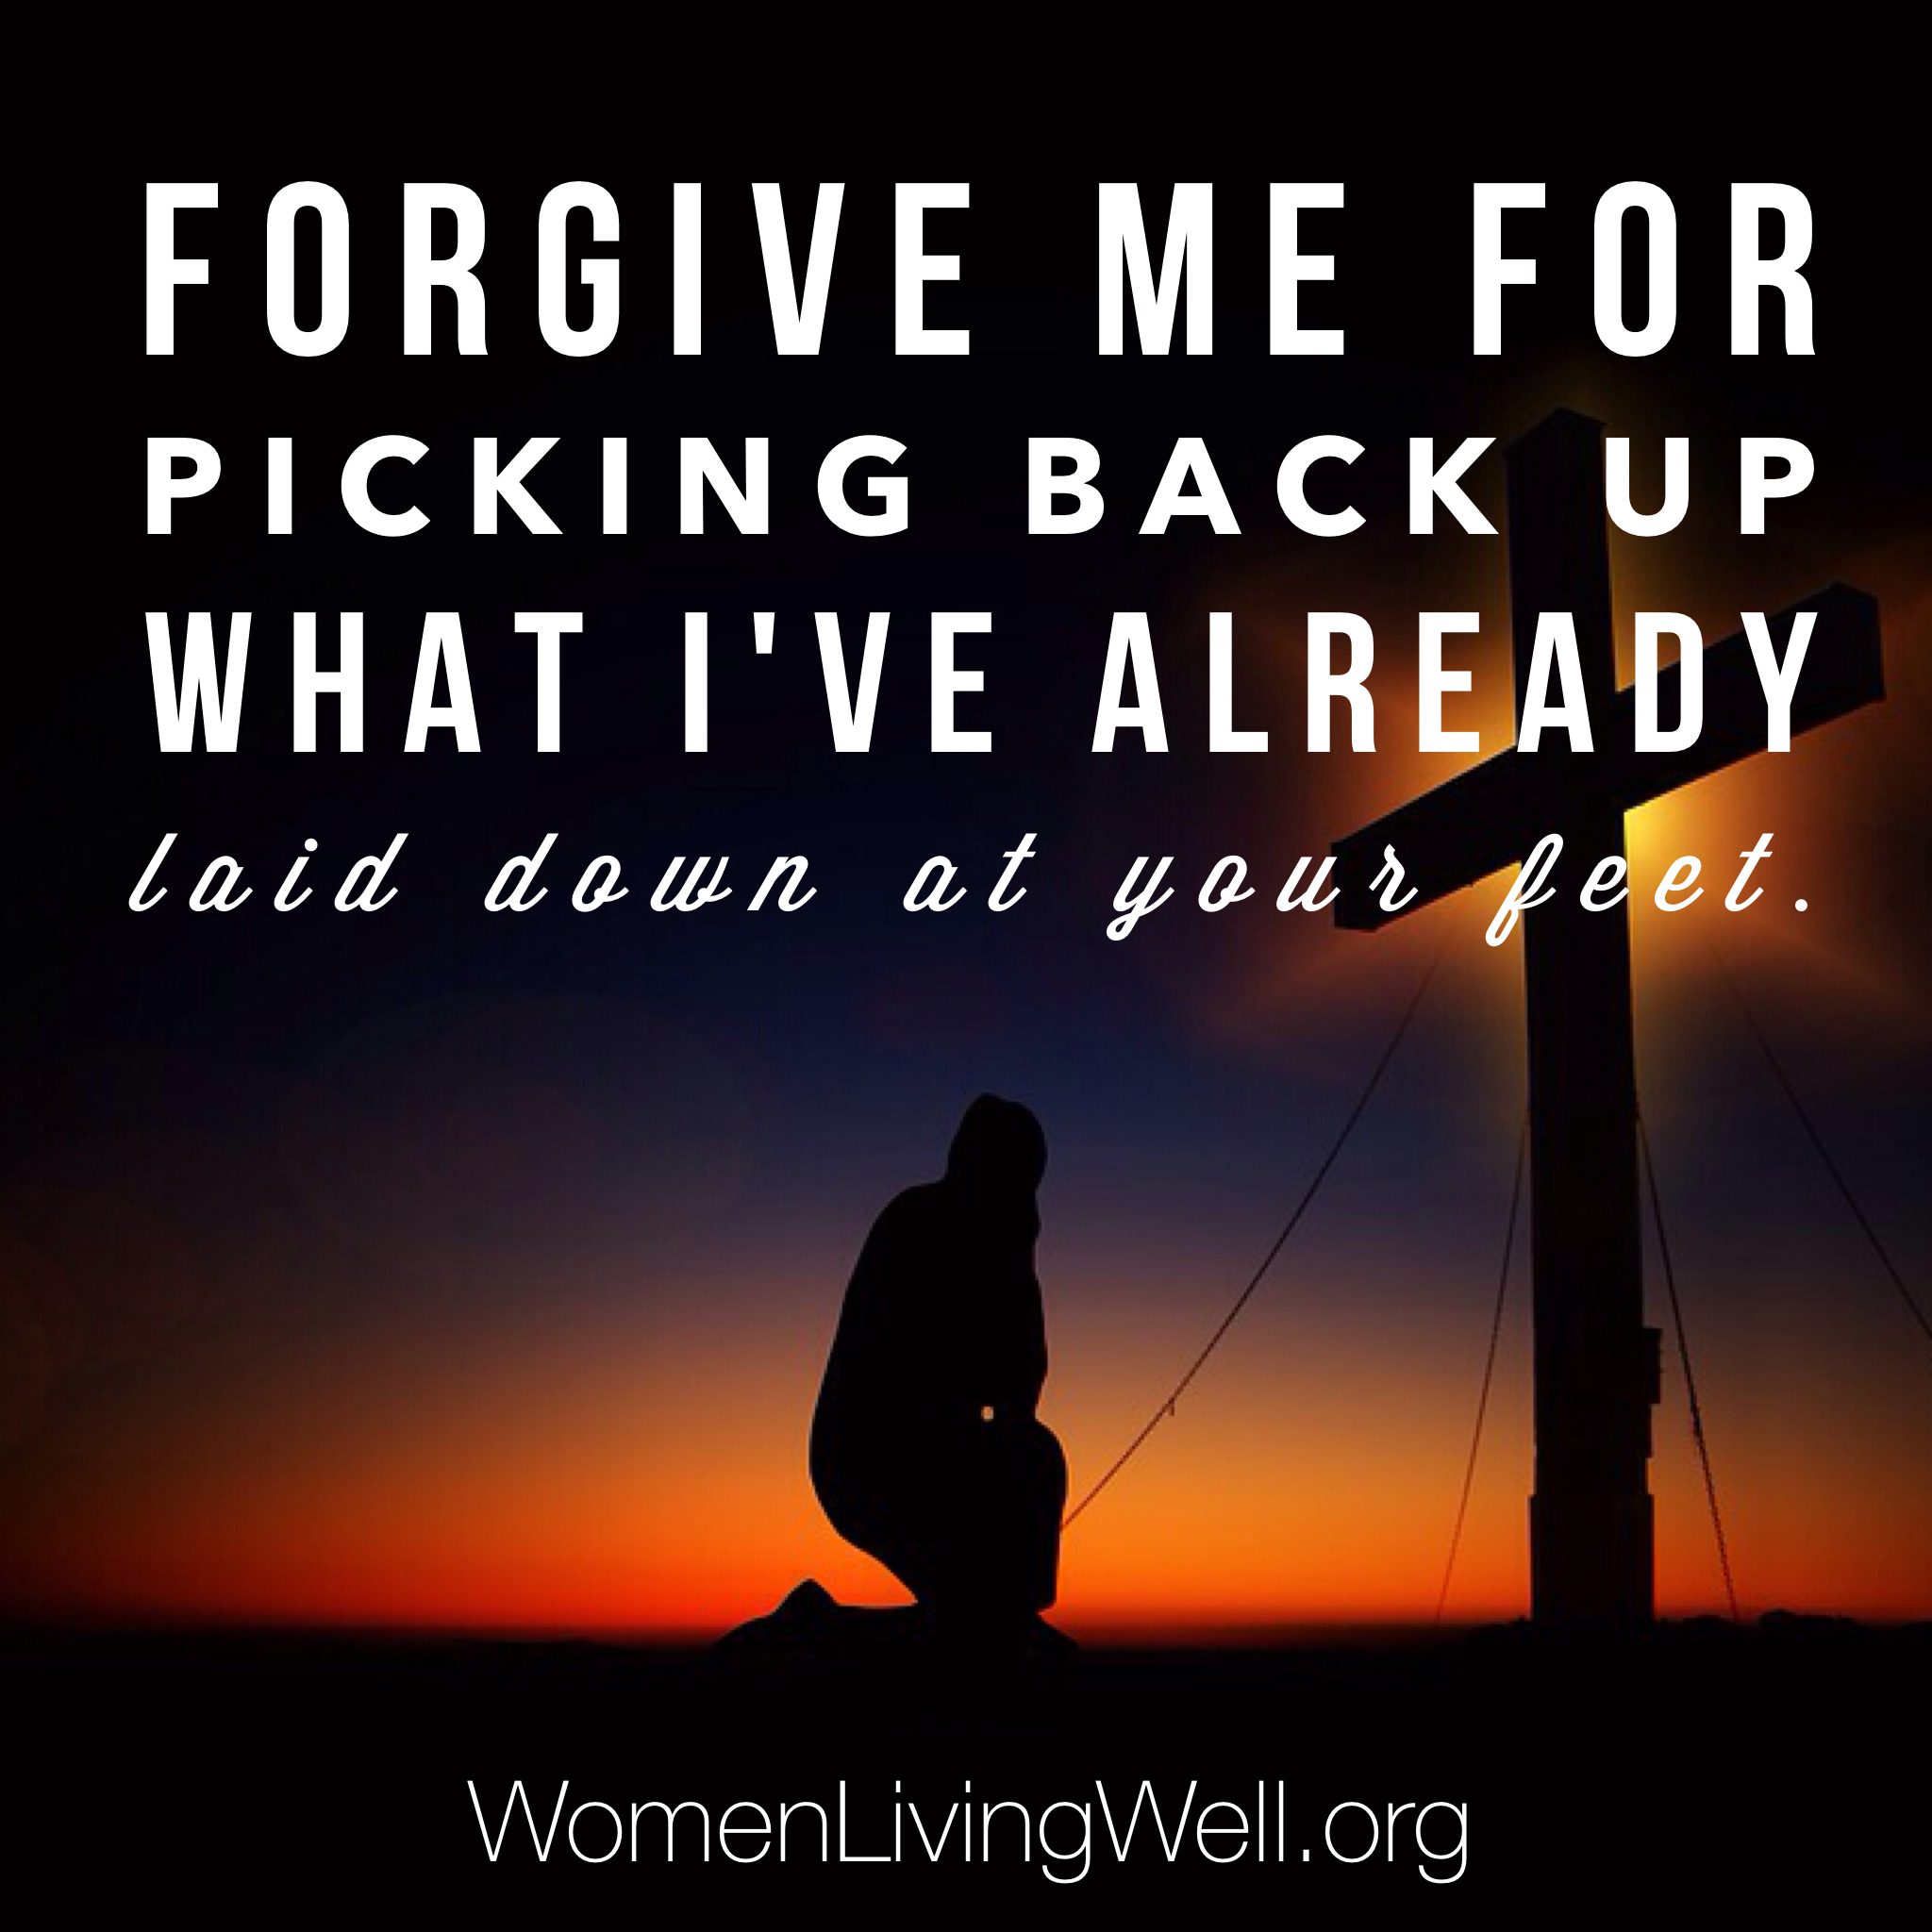 Forgive Me Quotes Forgive Me For Picking Back Up What I've Already Laid Down At Your